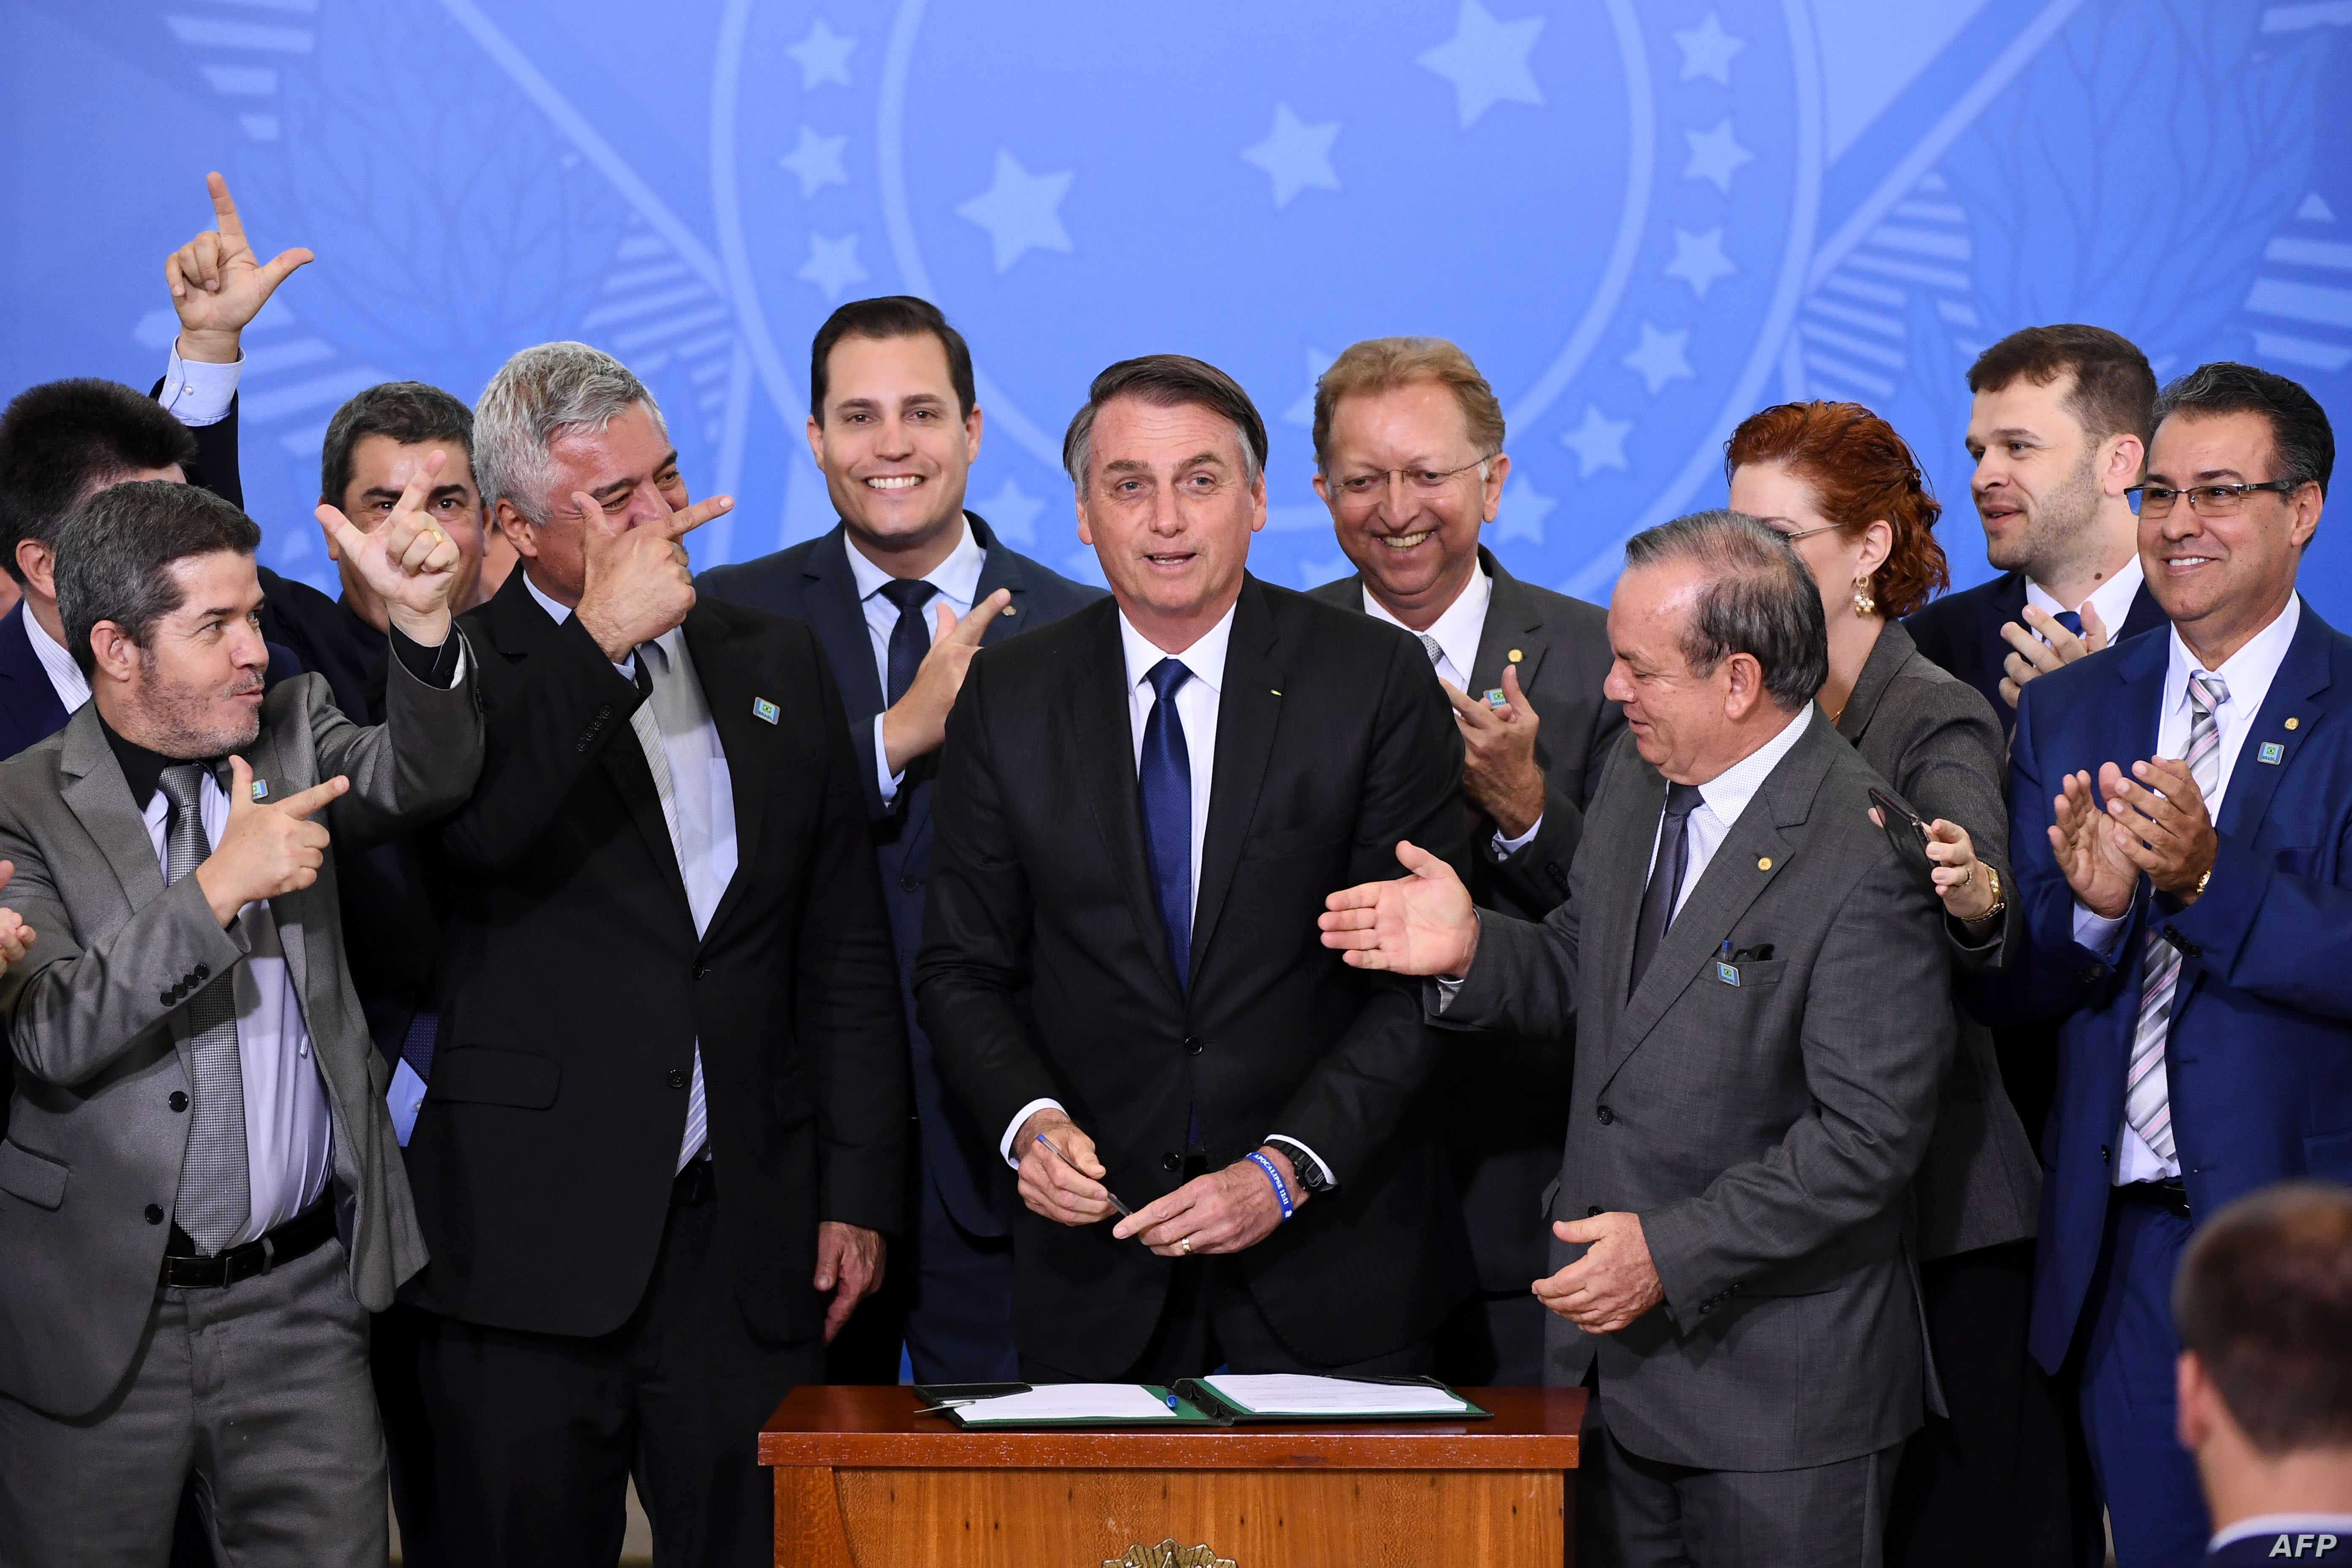 FILE - Brazilian President Jair Bolsonaro, center, is pictured surrounded by parliamentarians during the signing ceremony of the decree that facilitates to own, carry and import weapons, at the Planalto Palace in Brasilia, May 7, 2019.